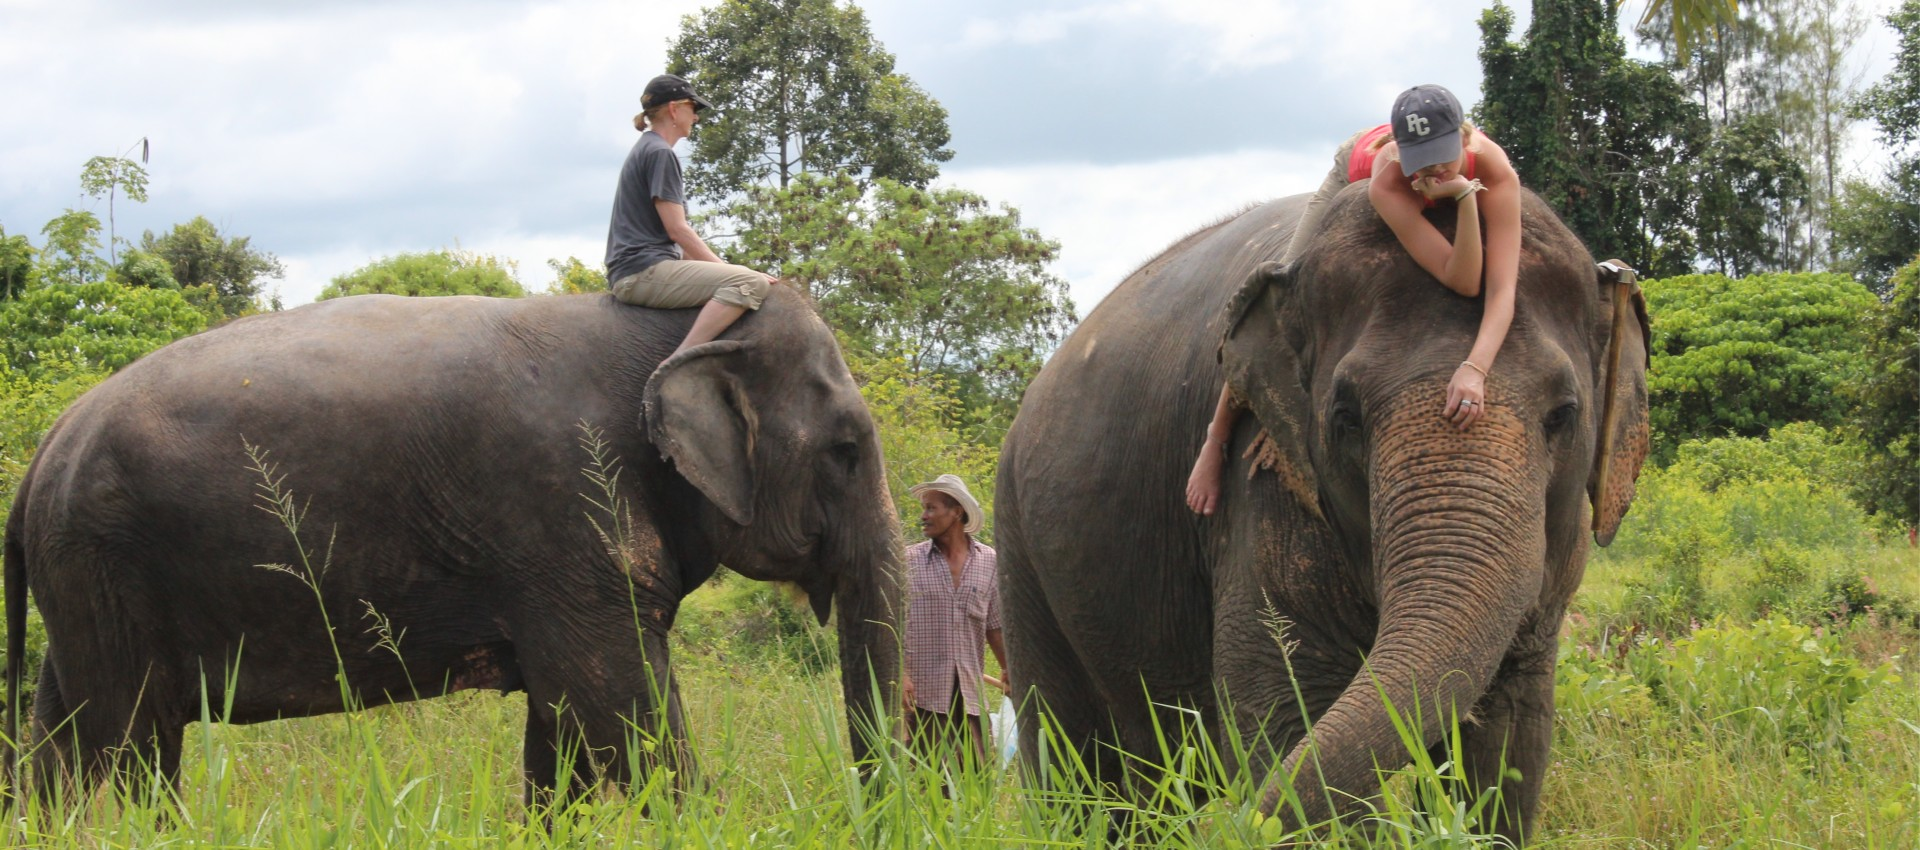 Working With Elephants